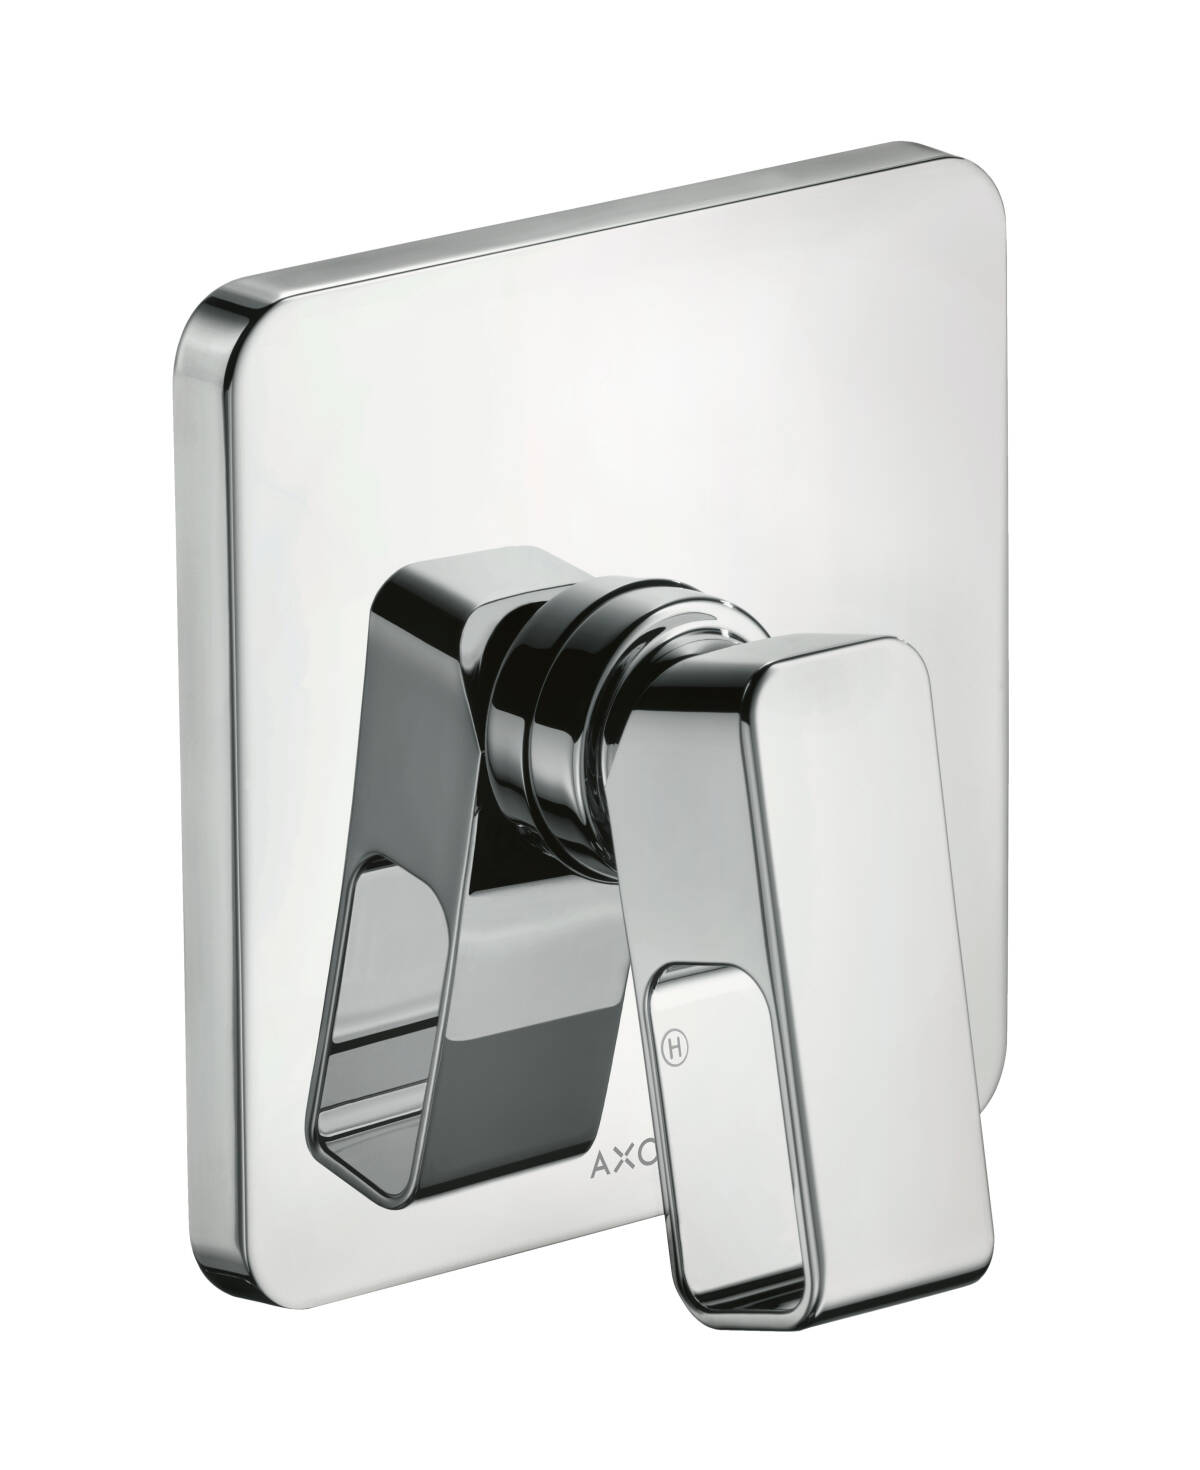 Single lever shower mixer for concealed installation, Stainless Steel Optic, 11625800